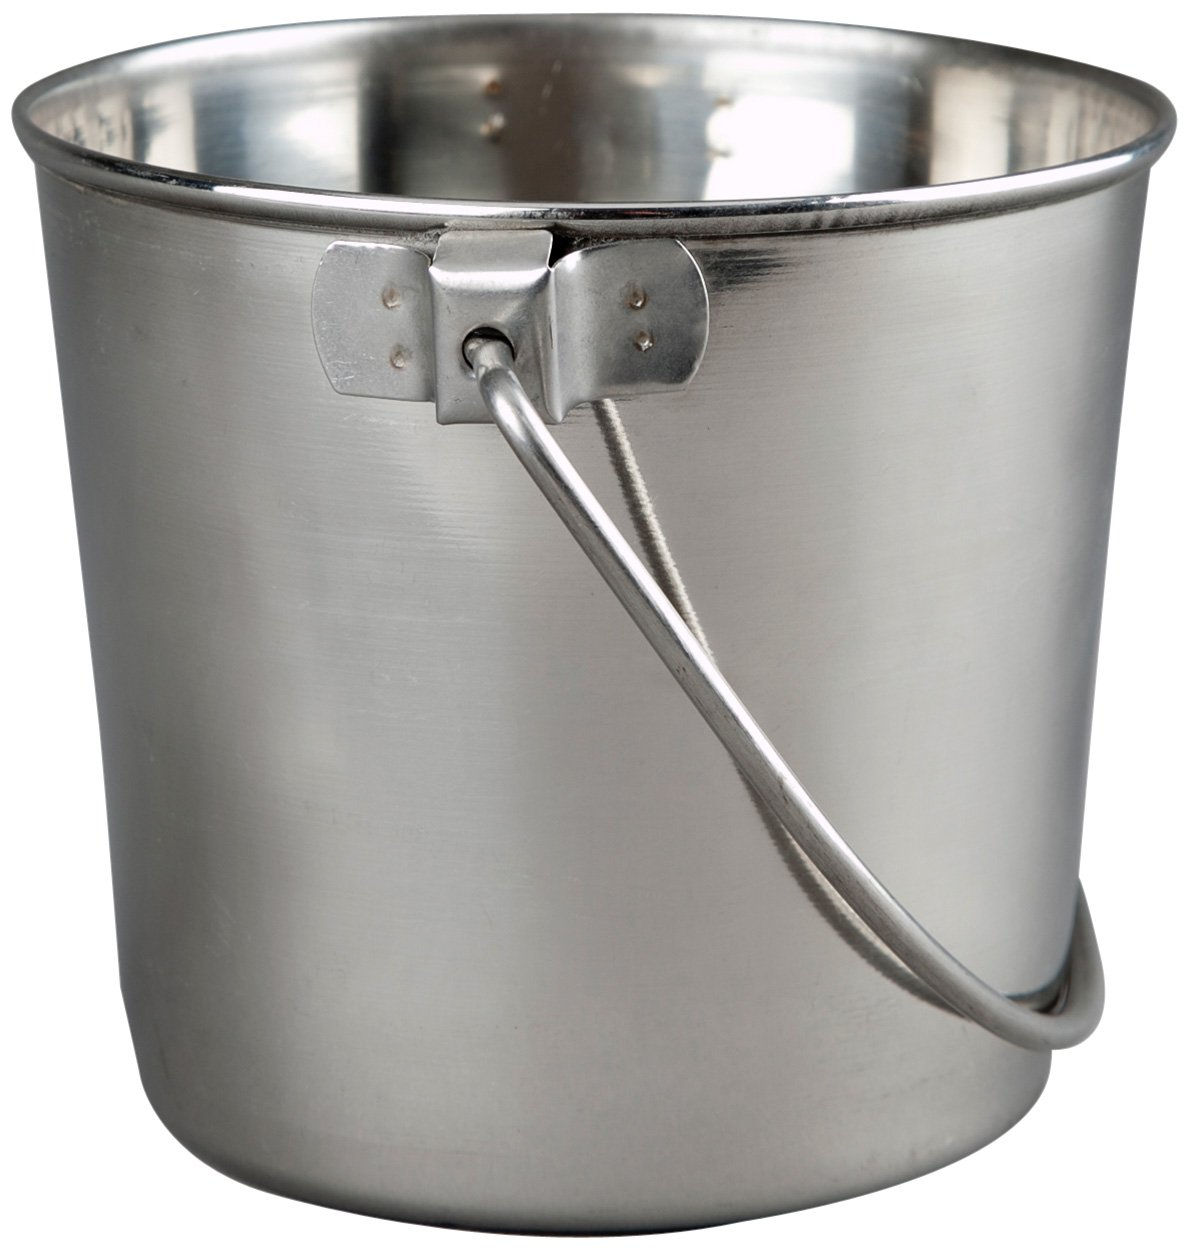 Advance Pet Products Heavy Stainless Steel Round Bucket, 9-Quart